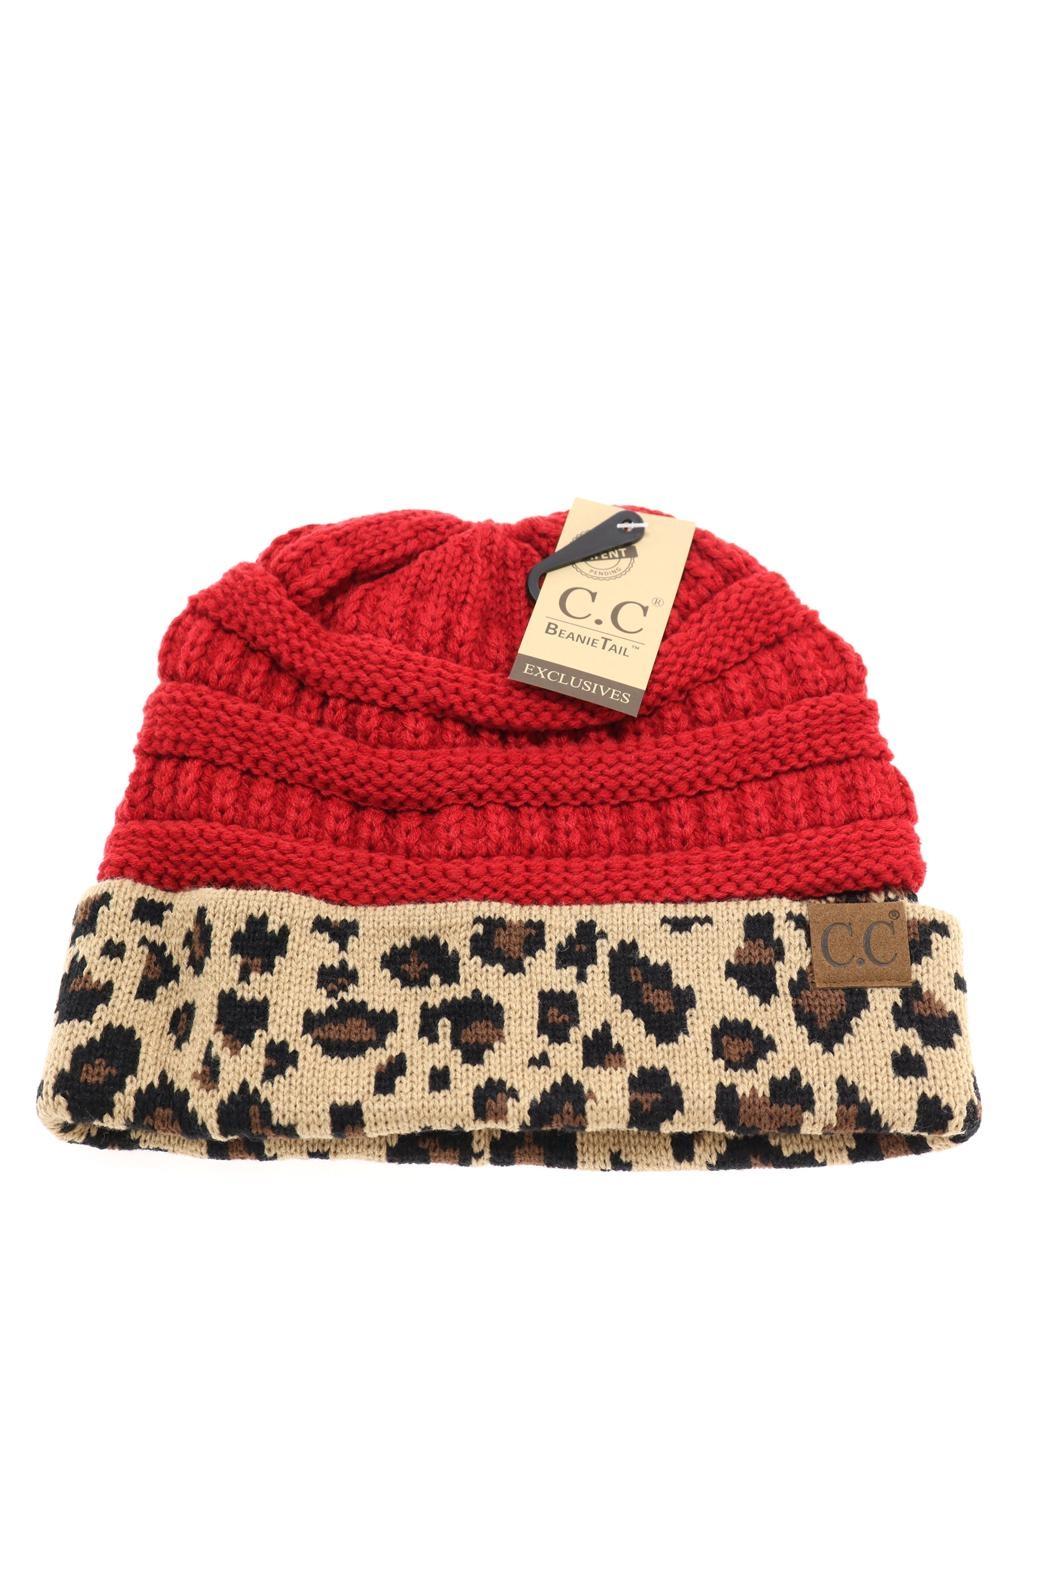 a67ae1986a4b1 C.C Beanie Red-Leopard Ponytail bun Beanie from Texas by Pickles and ...